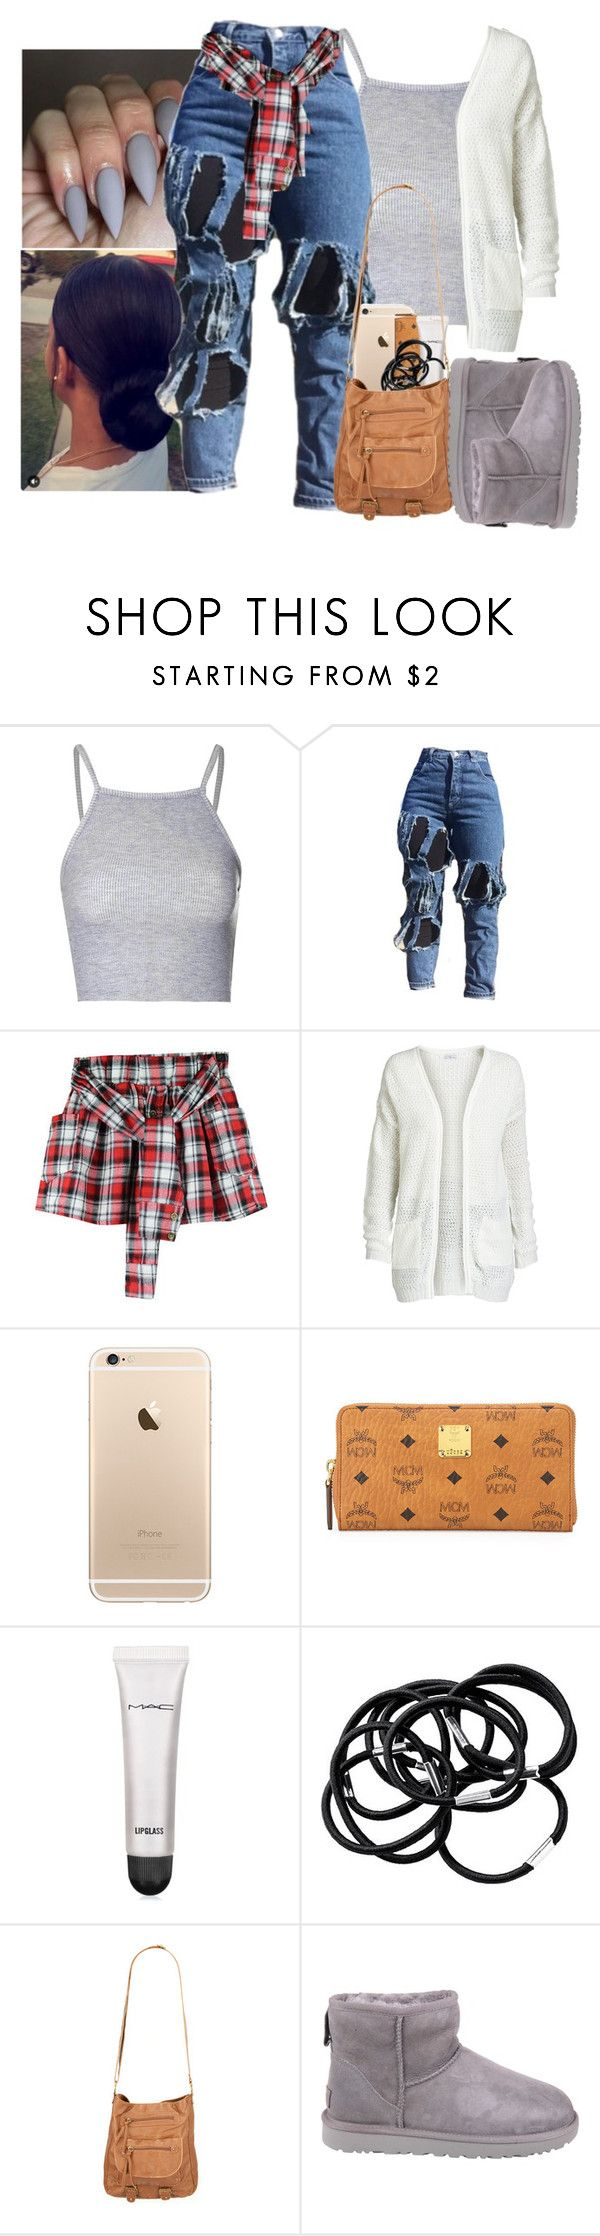 """Untitled #640"" by kayykayy15 ❤ liked on Polyvore featuring Sonatina, Glamorous, ONLY, MCM, MAC Cosmetics, H&M, T-shirt & Jeans and UGG"